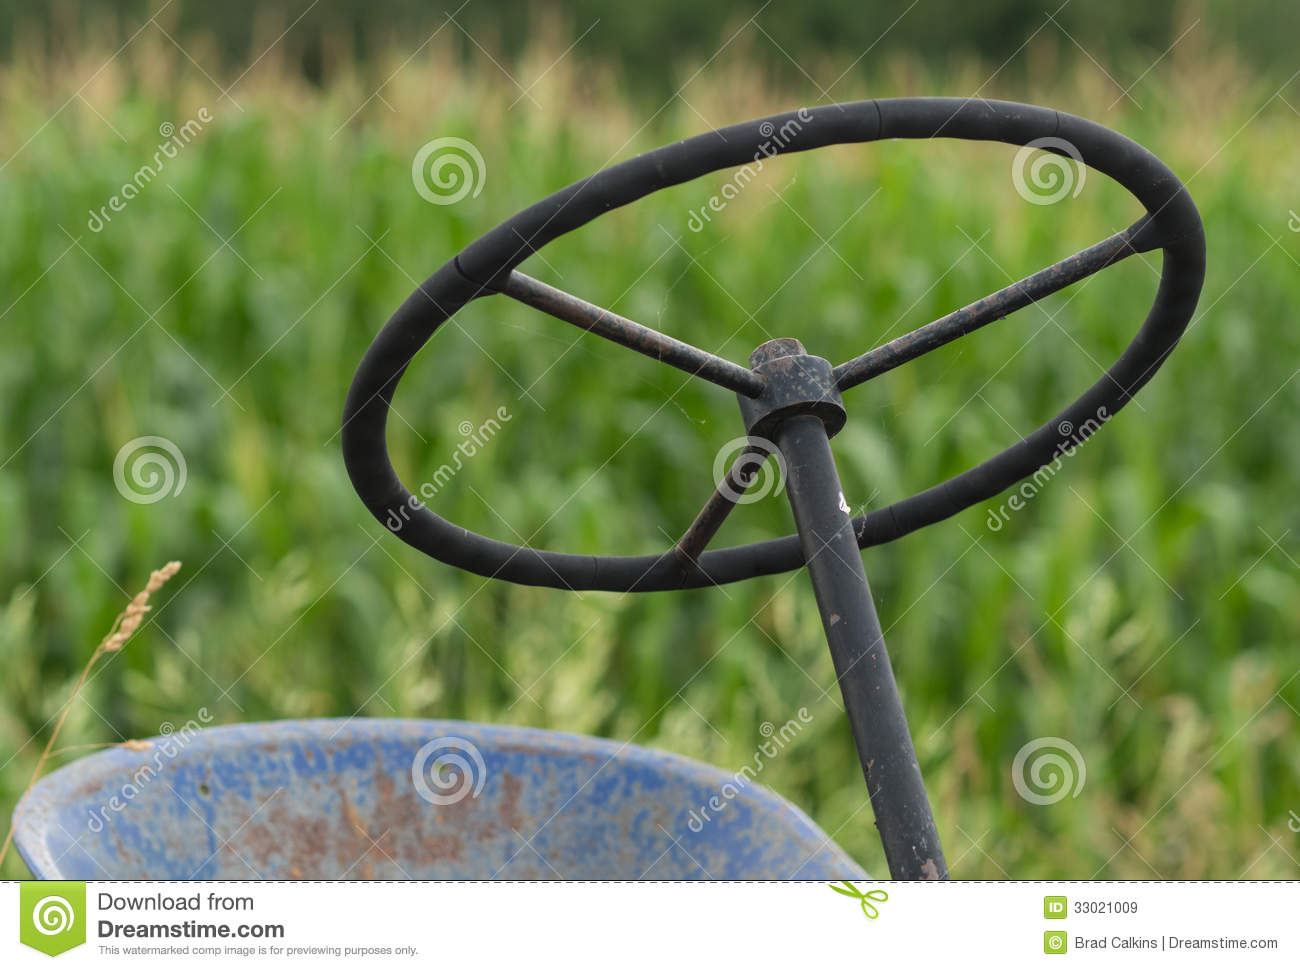 Tractor Steering Wheel Clip Art : Tractor wheel royalty free stock images image